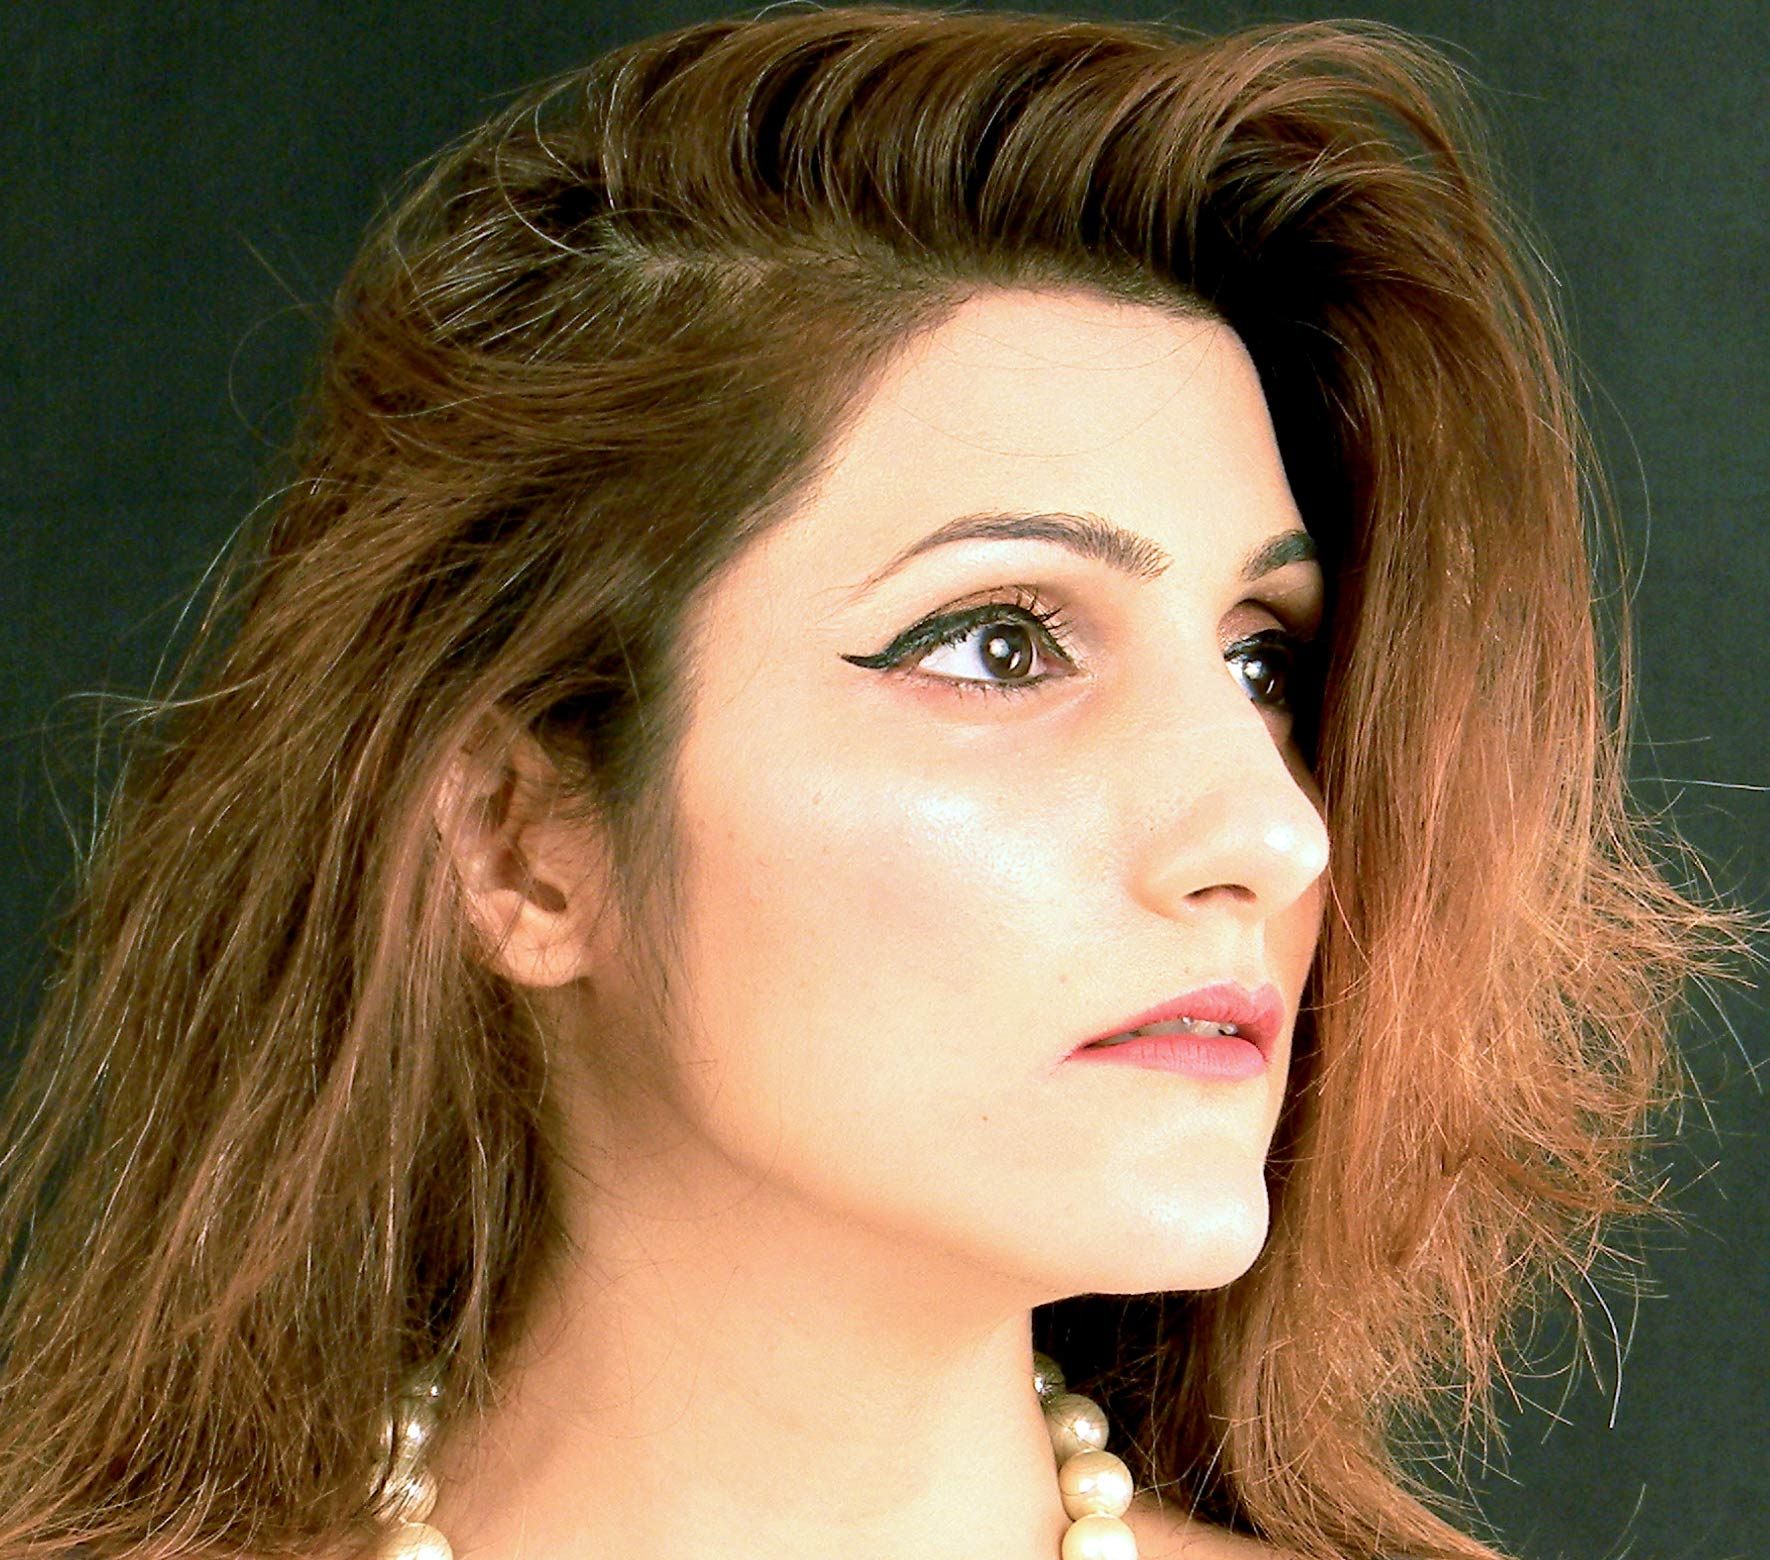 shilpa-ahuja-pearl-necklace-fashion-blogger-makeup-evening-look